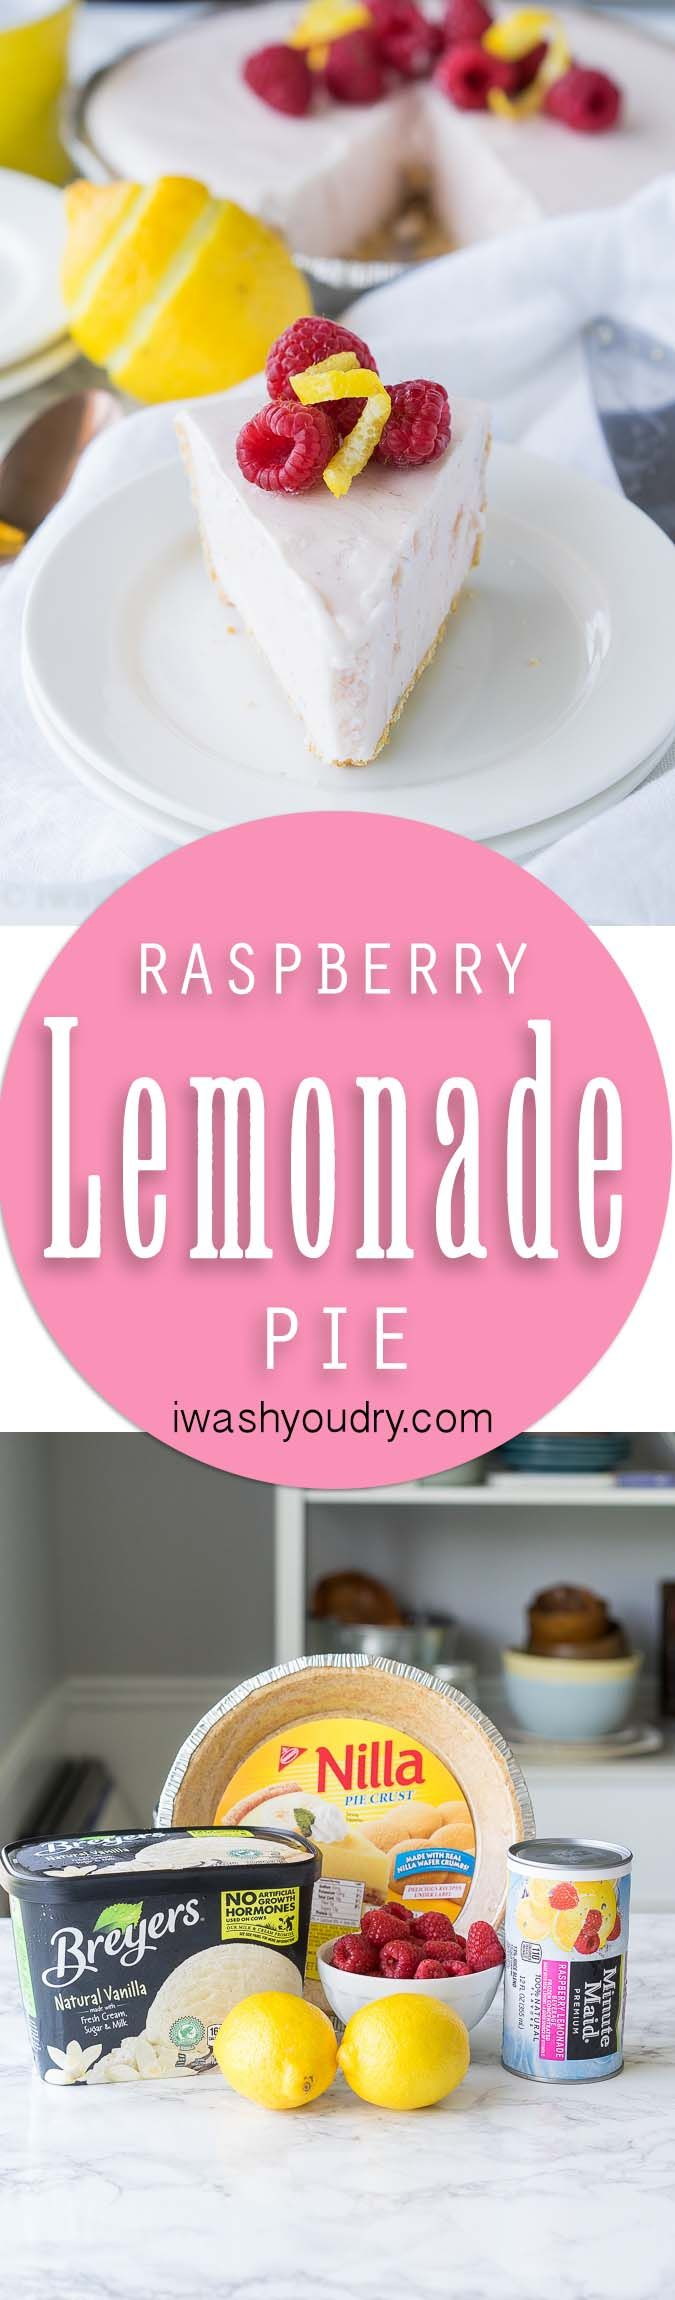 This super easy, 3 ingredient, Raspberry Lemonade Pie is a frozen pie that's perfect for a cool and refreshing dessert!